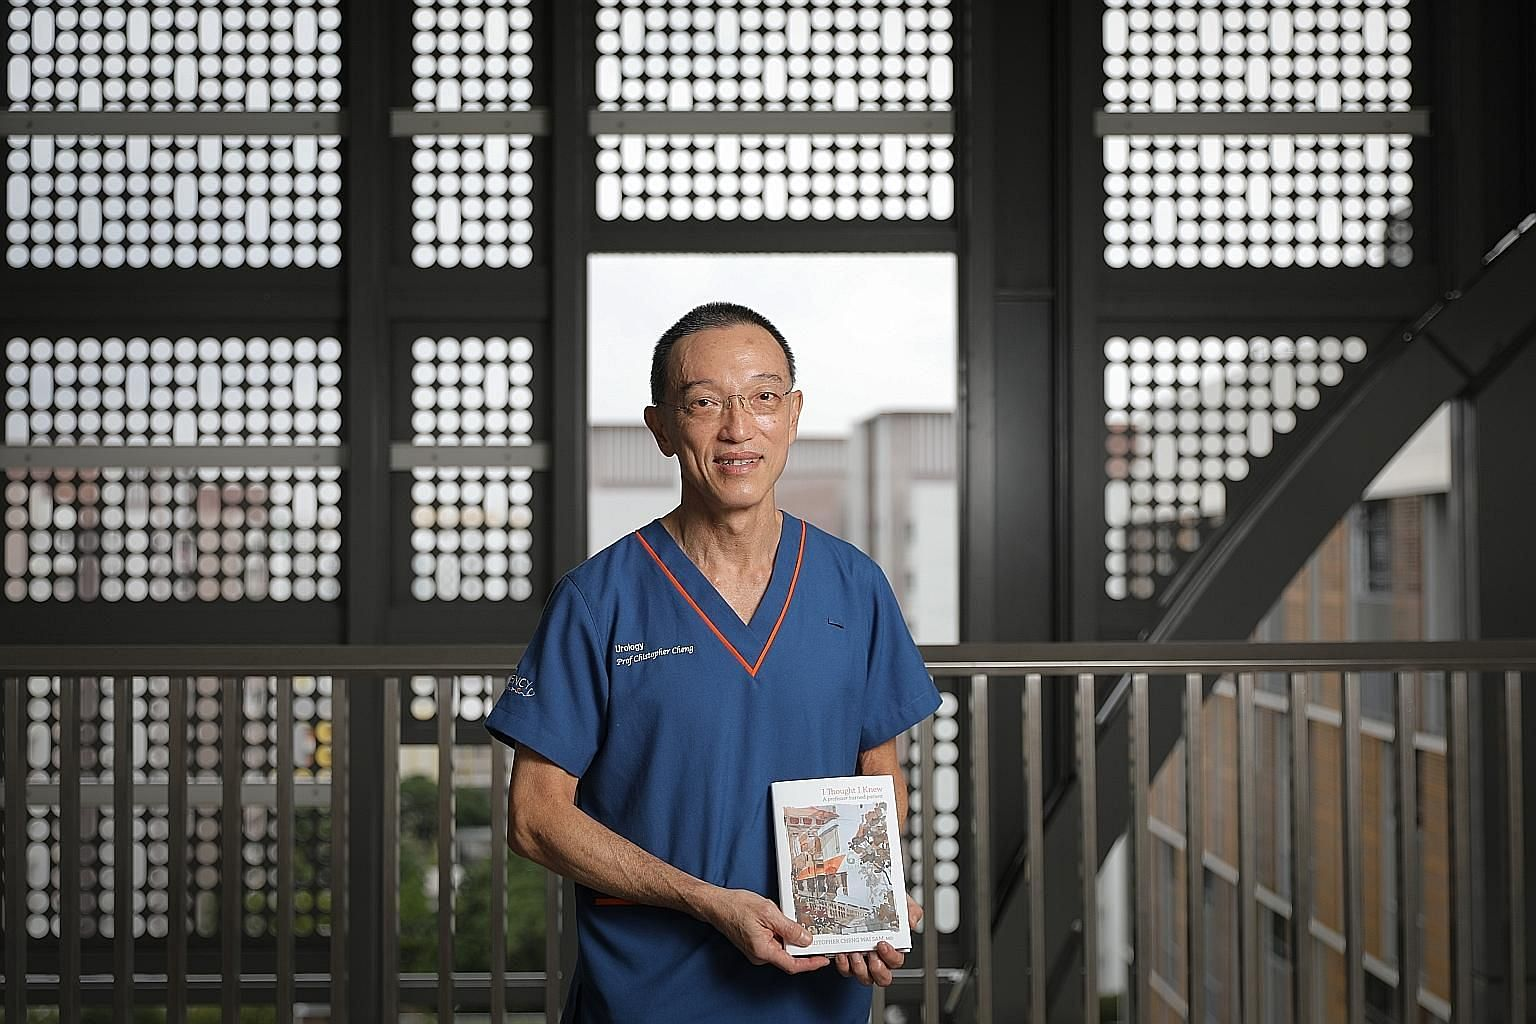 Professor Christopher Cheng was sketching by the window in hospital while recovering from prostate cancer surgery when his son visited him and suggested he document his journey from a patient's point of view. That inspired him to write I Thought I Kn